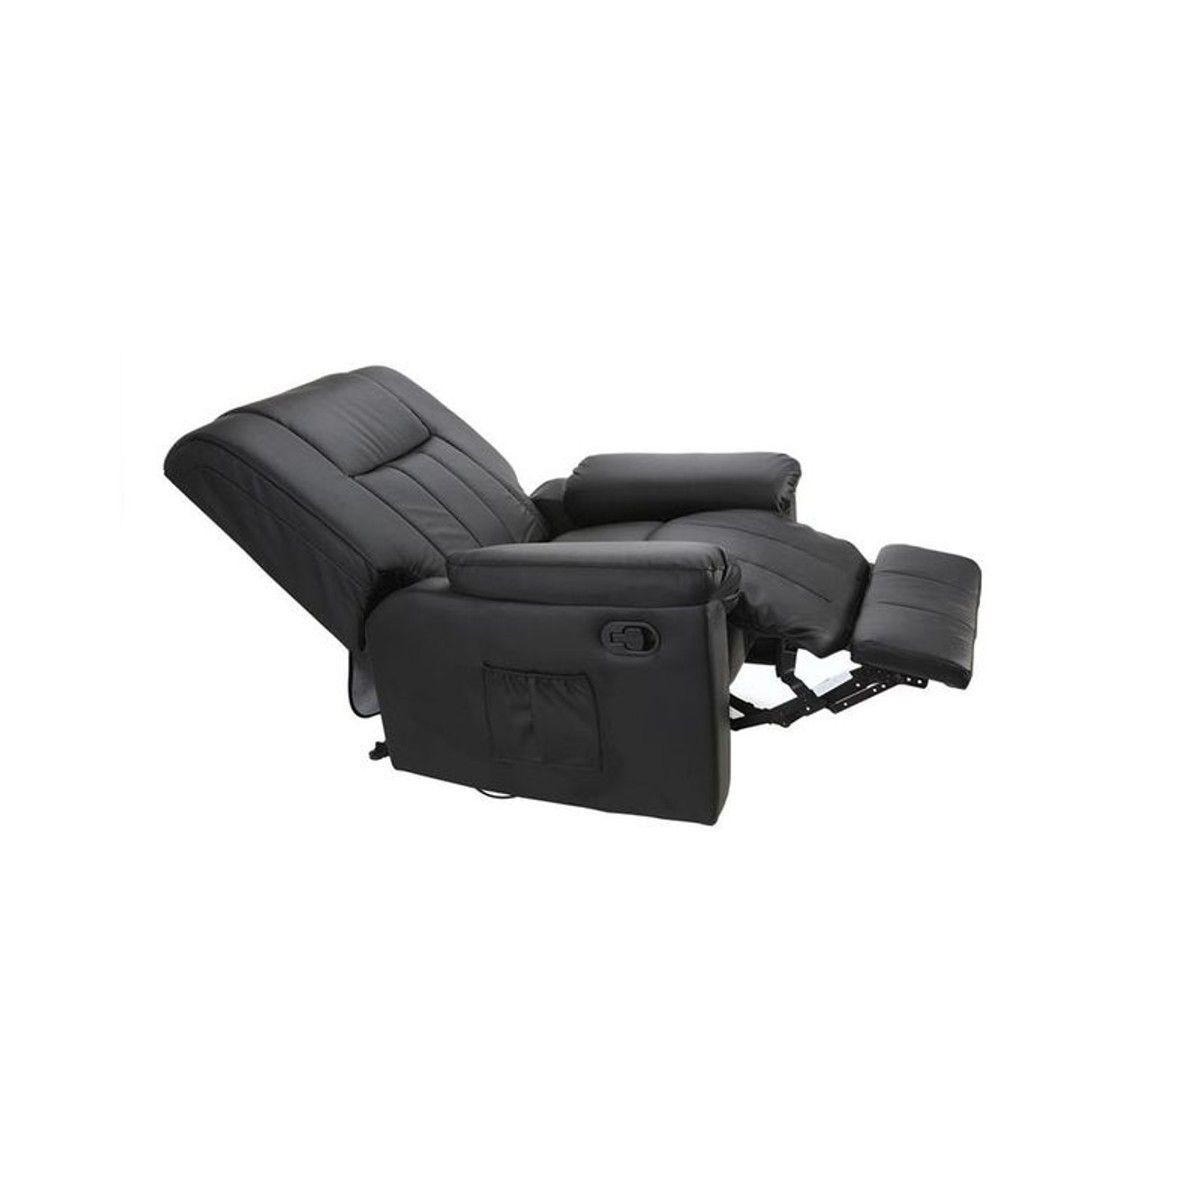 Fauteuil Relax 1 Place Fauteuil Relax Manuel Joey Taille 1 Place En 2018 Products